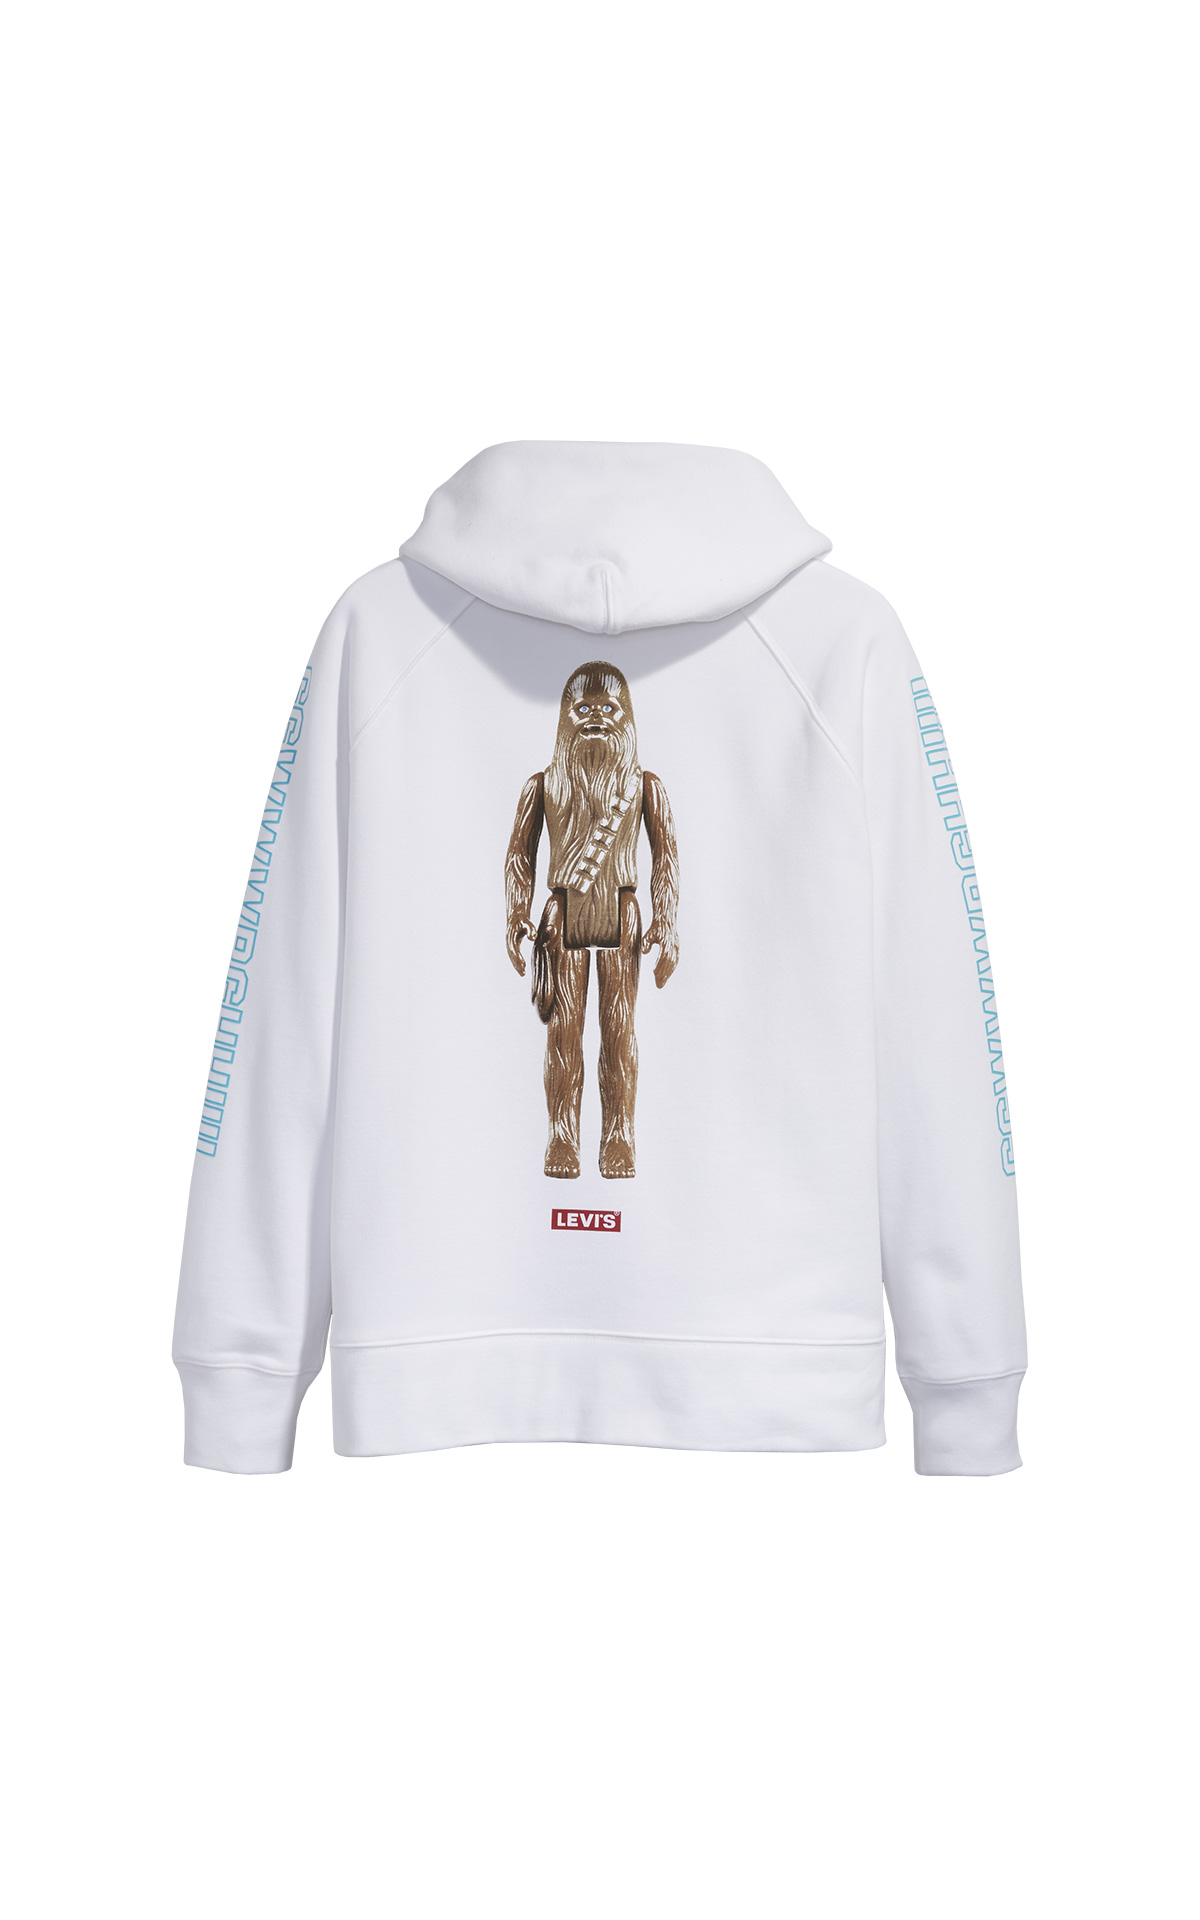 White Graphic sport hoodie Star Wars Levi's